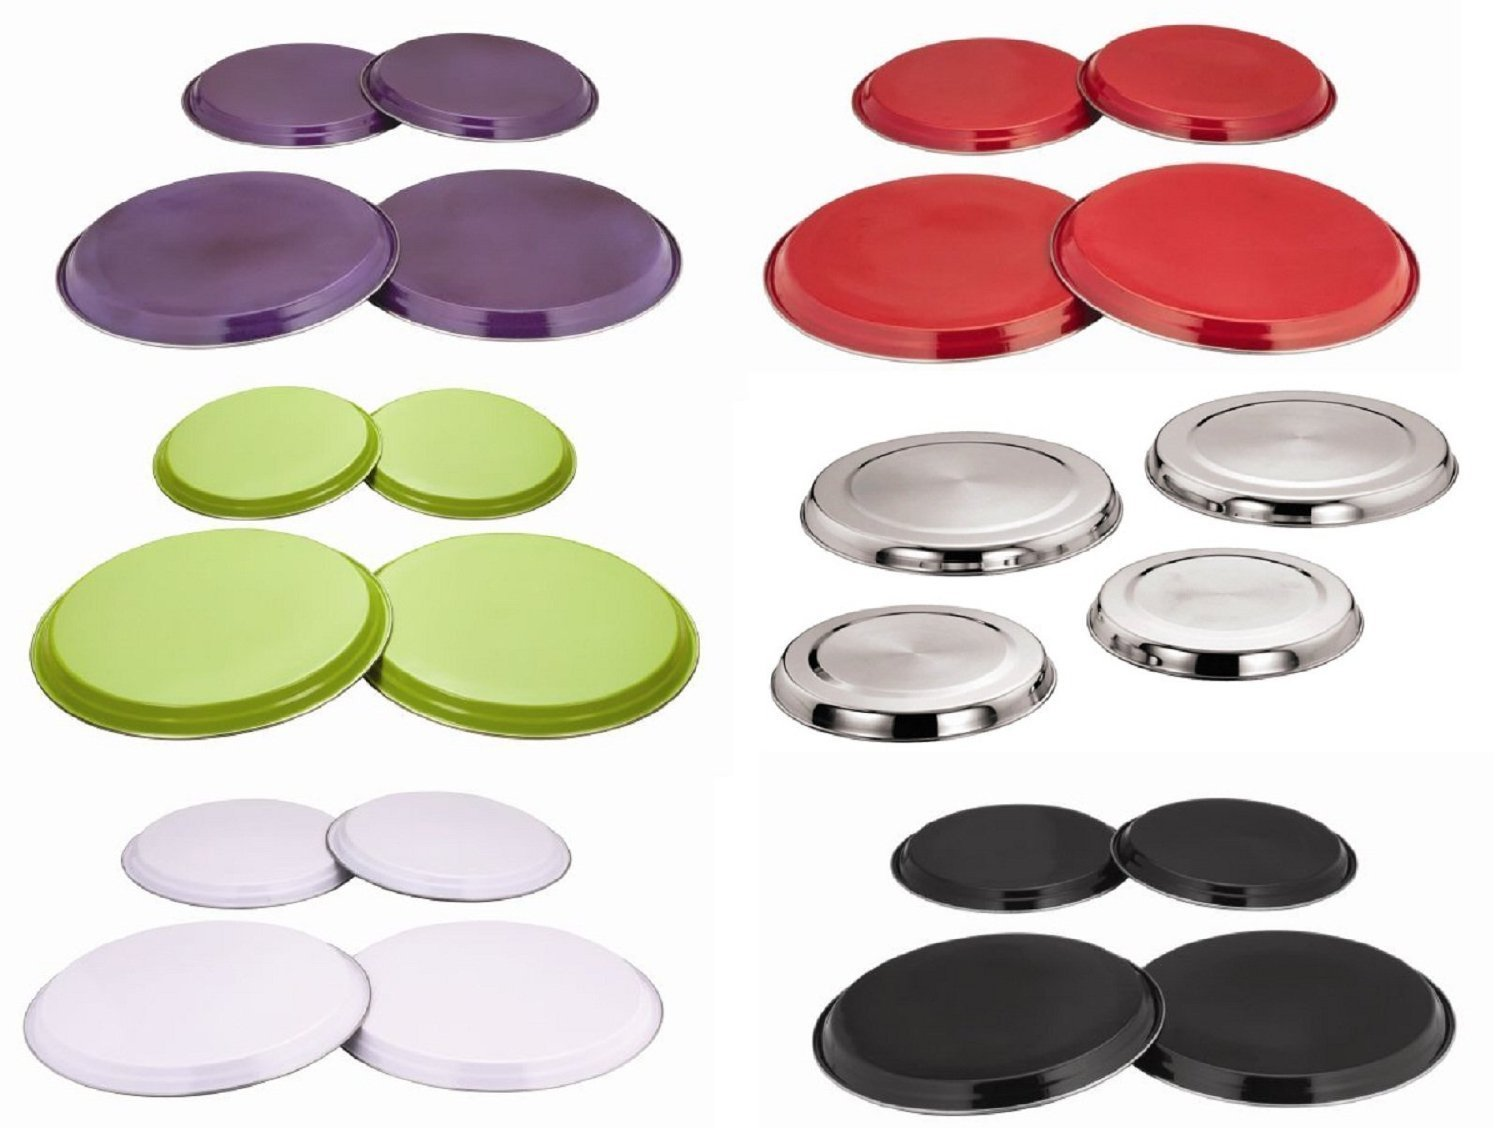 4pc STAINLESS STEEL GAS ELECTRIC COOKER OVEN HOB BURNER COVERS RINGS COVER PROTECTOR SET (PURPLE) Triple A Online Ltd